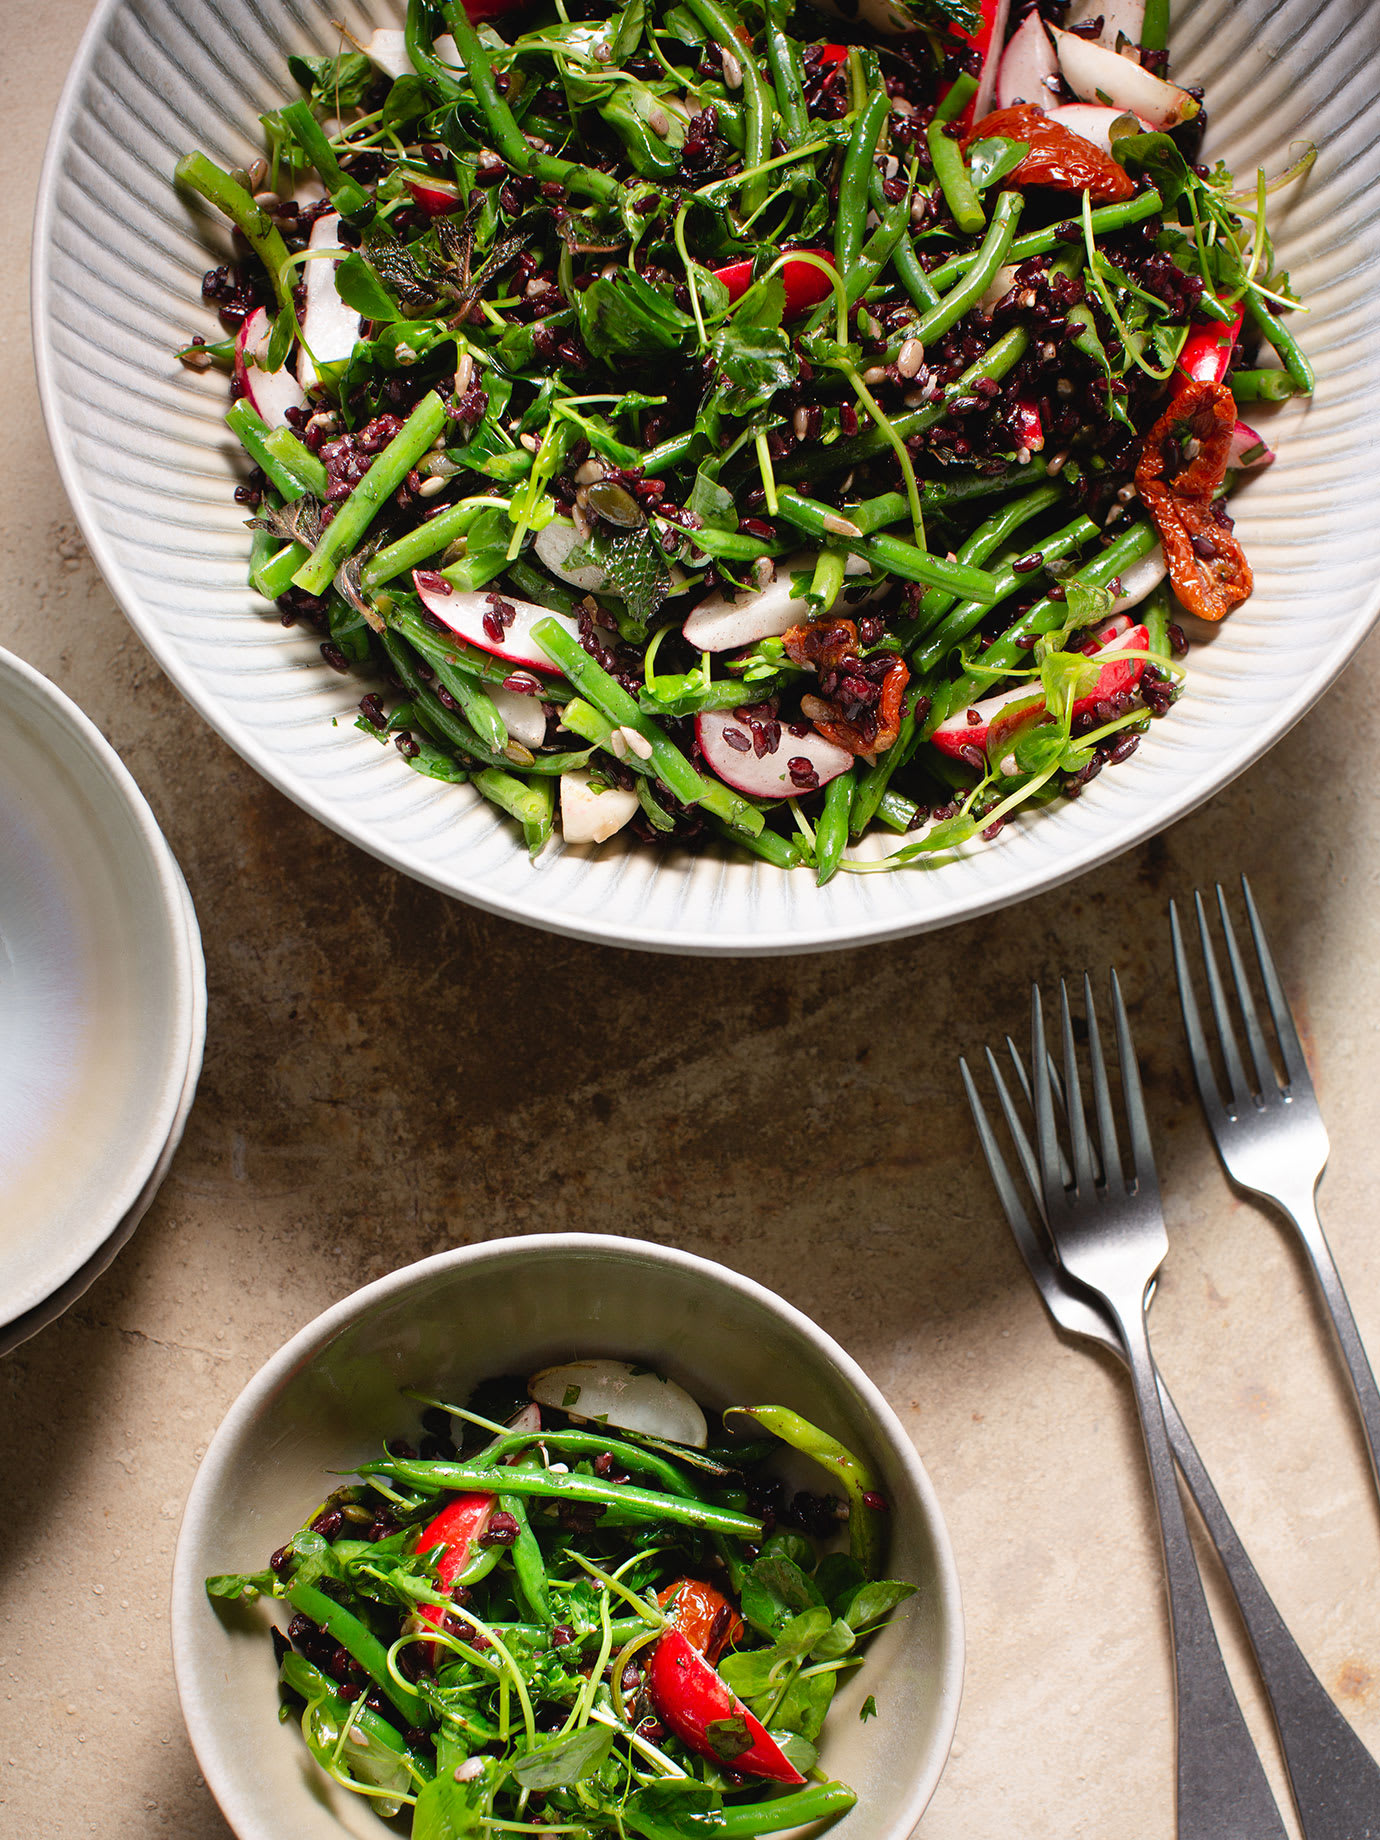 Two bowls of green salad.